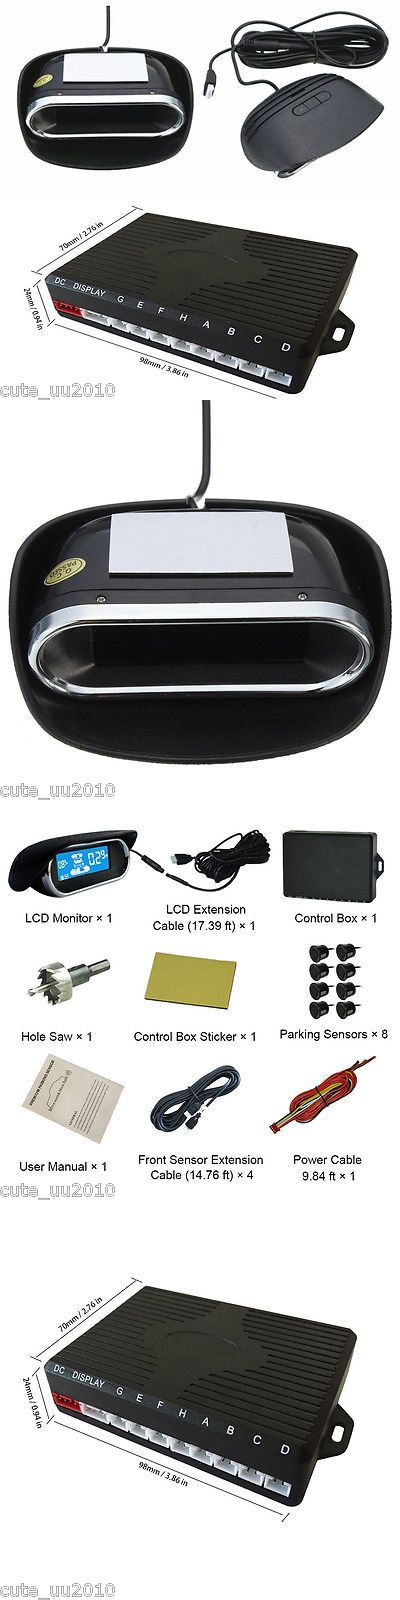 Relays and Sensors: 8 Parking Sensors Led Display Car Auto Reverse Radar Collision Avoidance System -> BUY IT NOW ONLY: $59.89 on eBay!